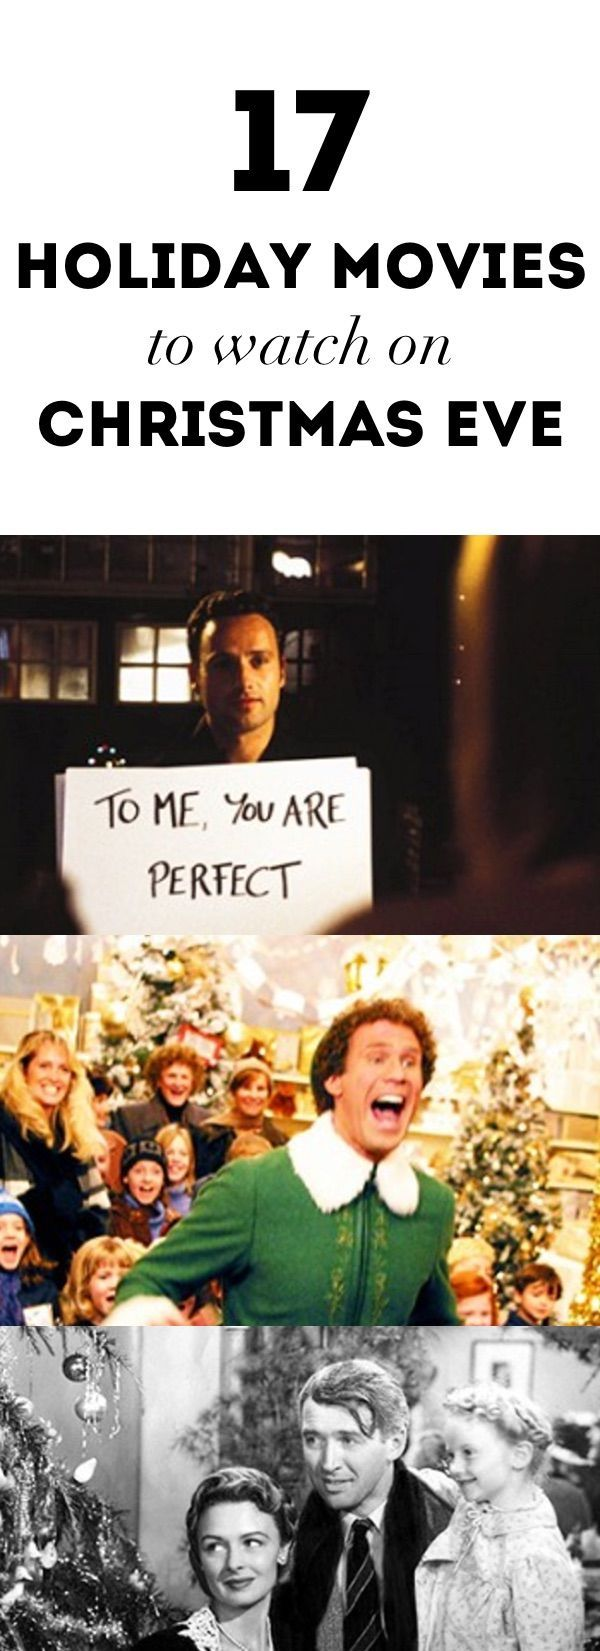 Best 25+ Best holiday movies ideas on Pinterest | Holiday movies ...